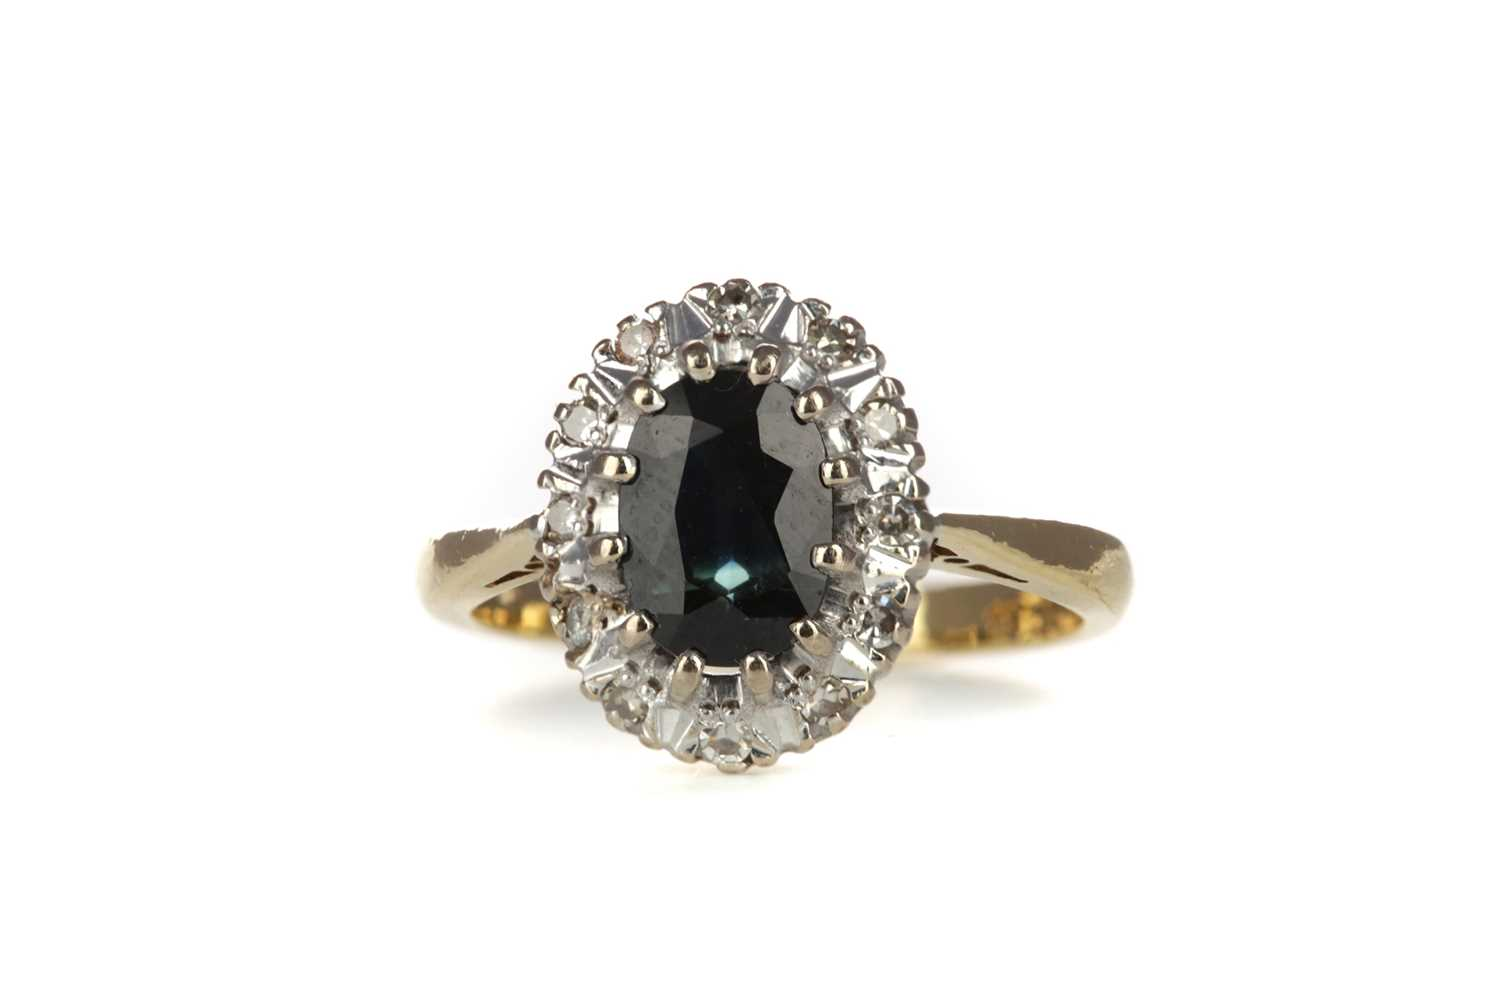 Lot 332 - A SAPPHIRE AND DIAMOND RING